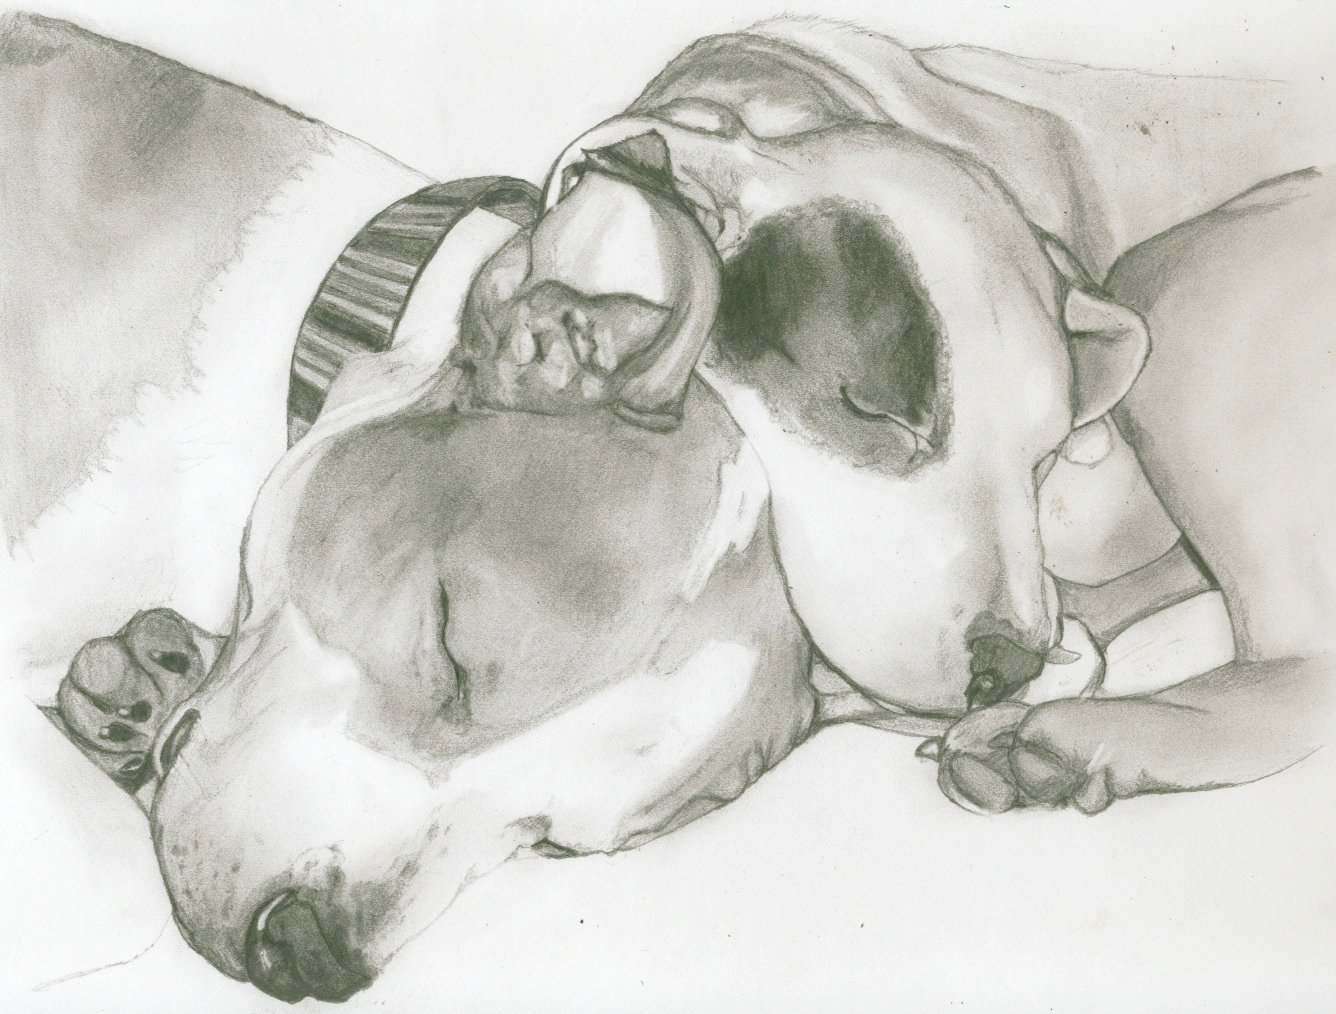 Pitbull dog drawings in pencil - photo#28